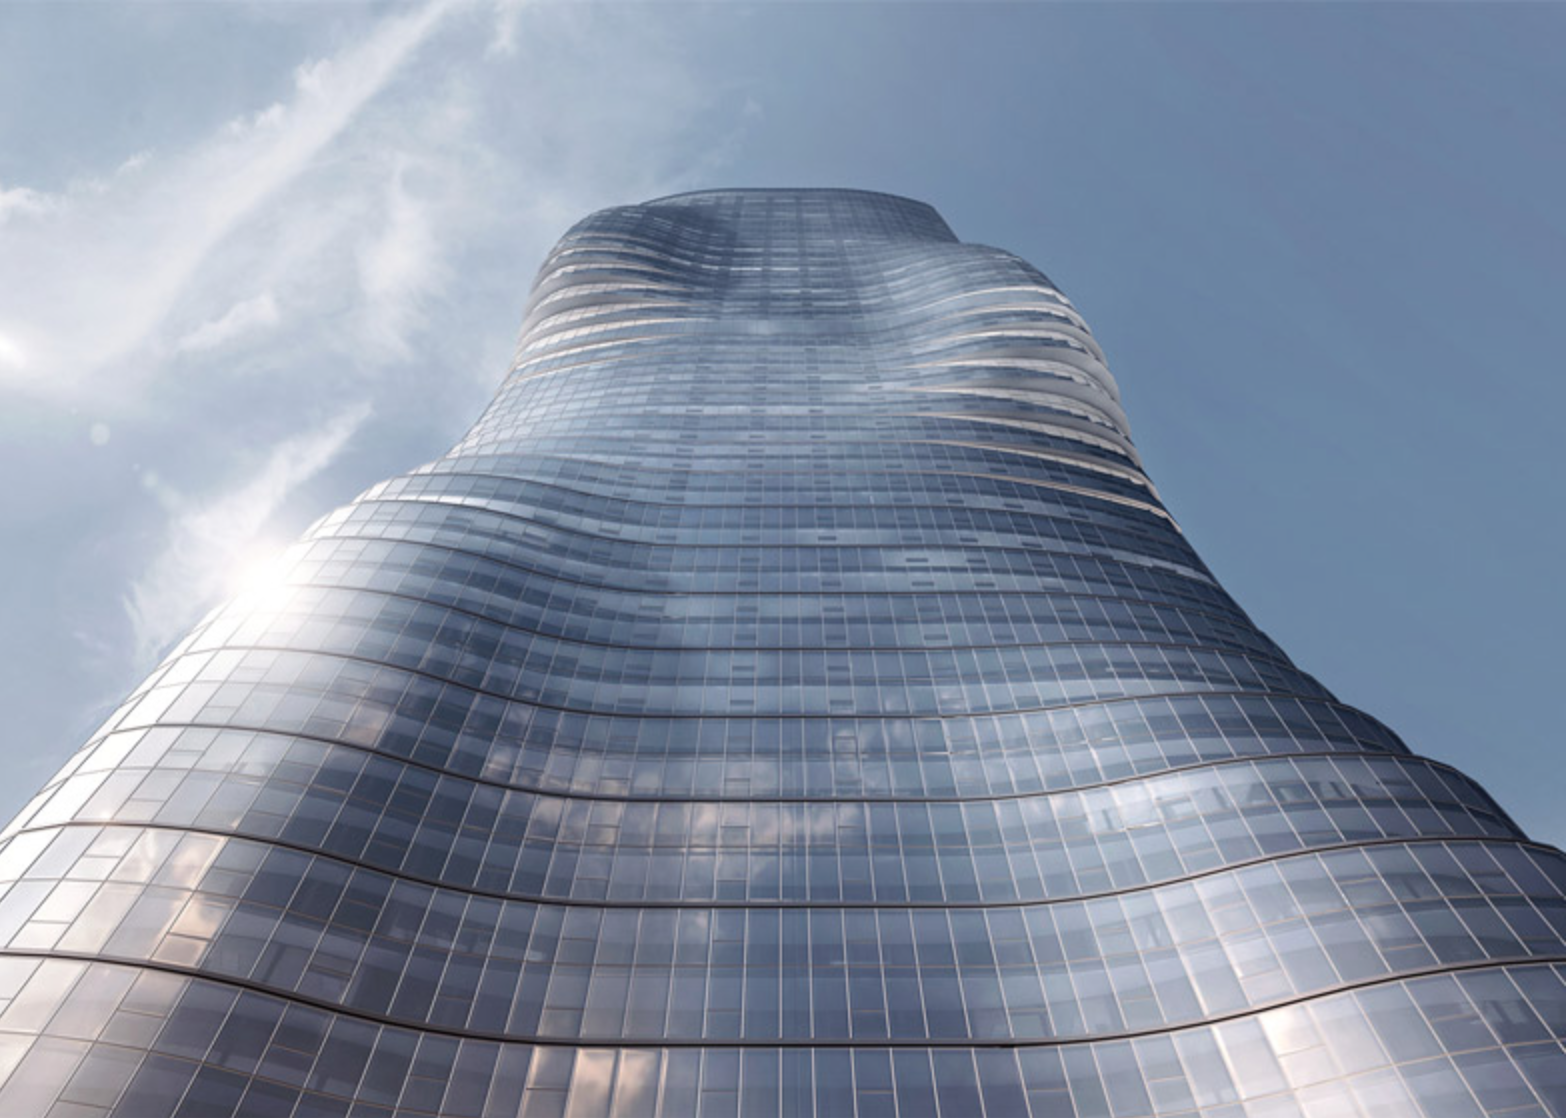 Premiere Tower's contours mimic the curves of Beyoncé's famous figure.